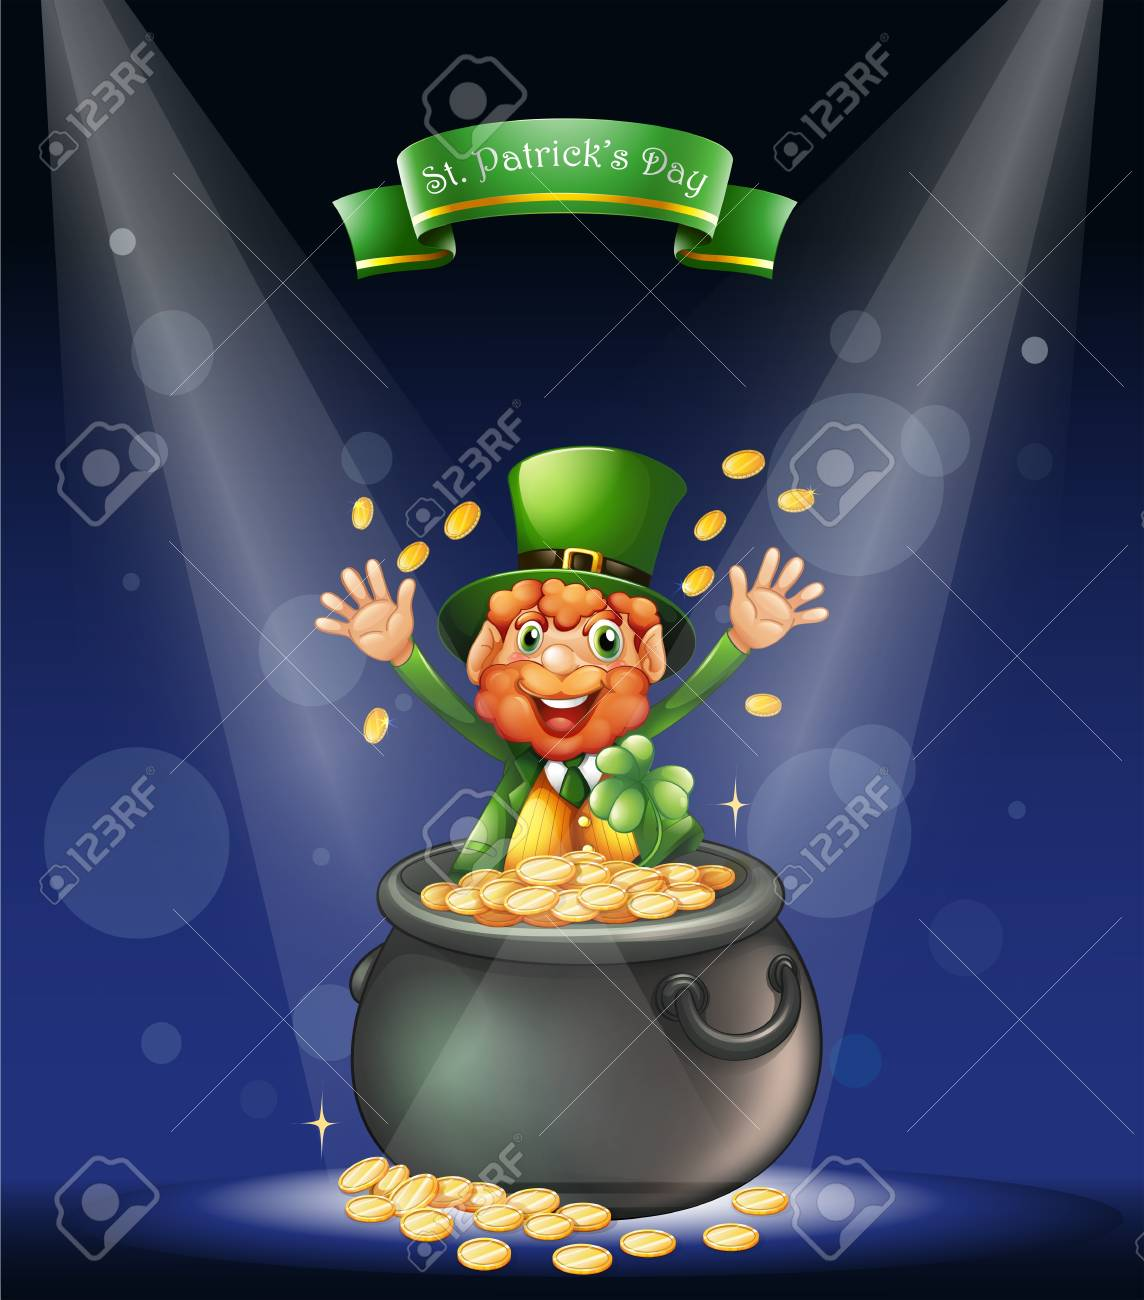 Illustration of a man with a pot full of coins at the center of the stage Stock Vector - 18549541